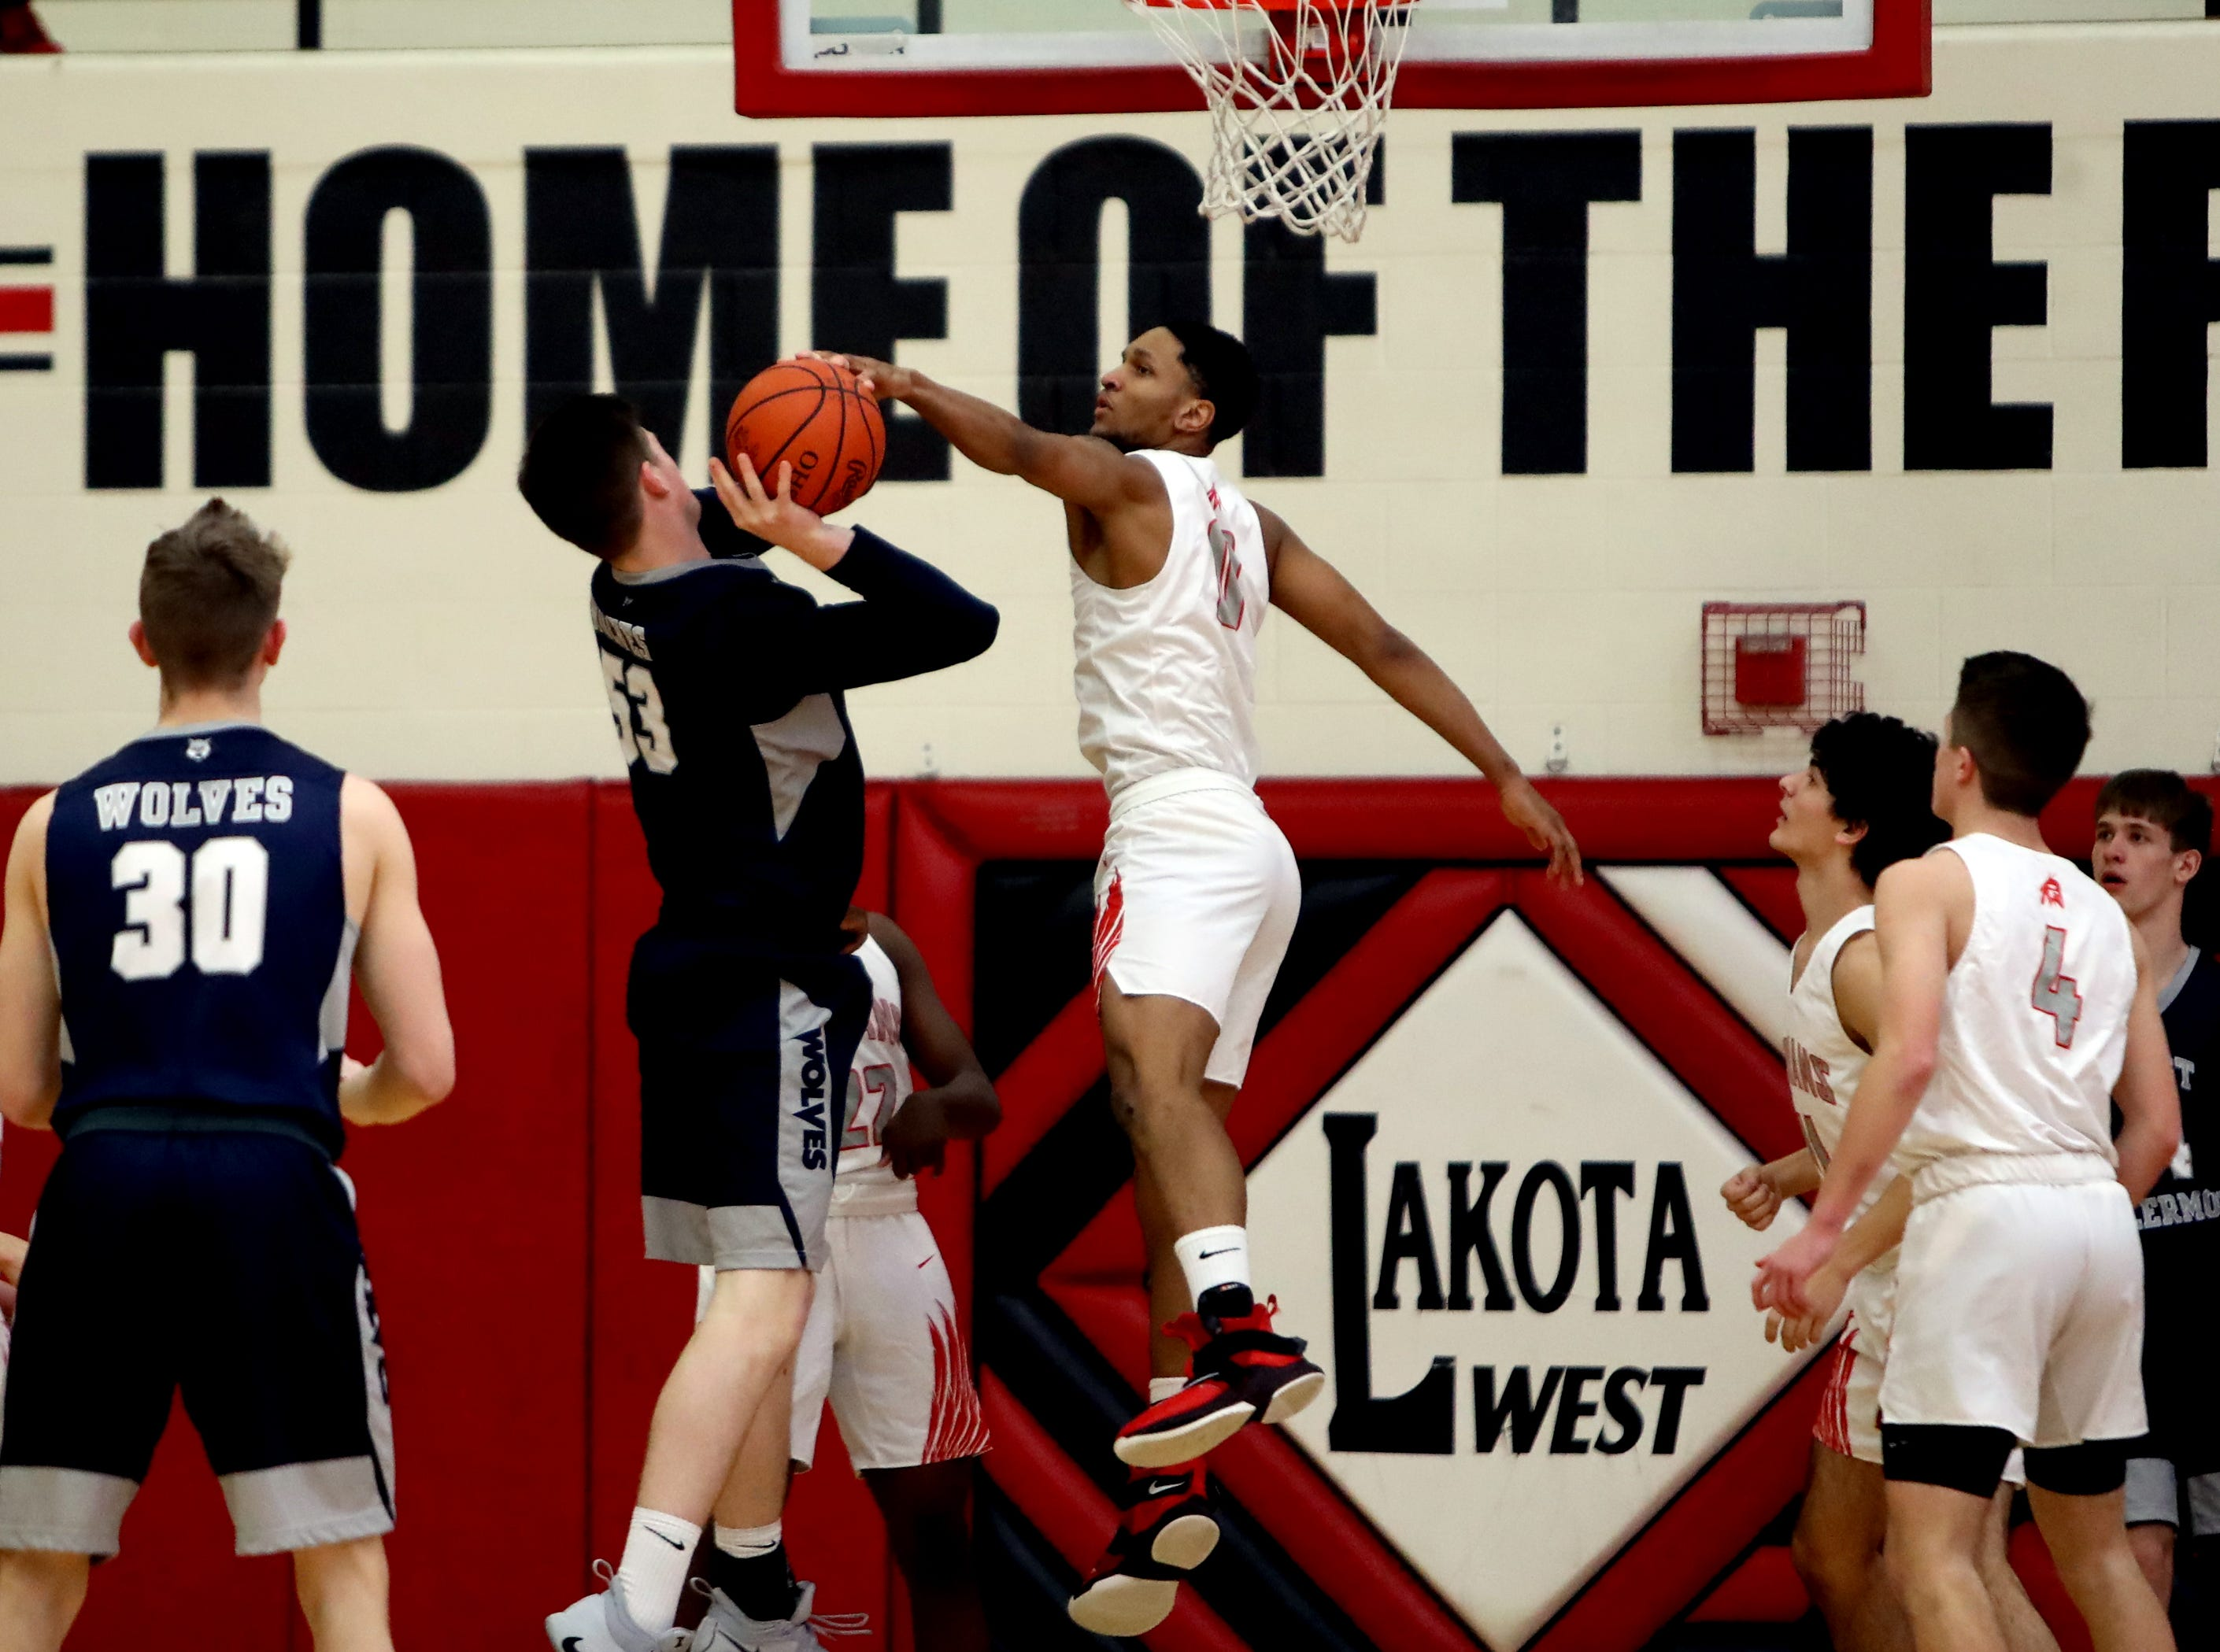 Fairfield guard Devin Turner blocks the shot of West Clermont center Jackson Ames.